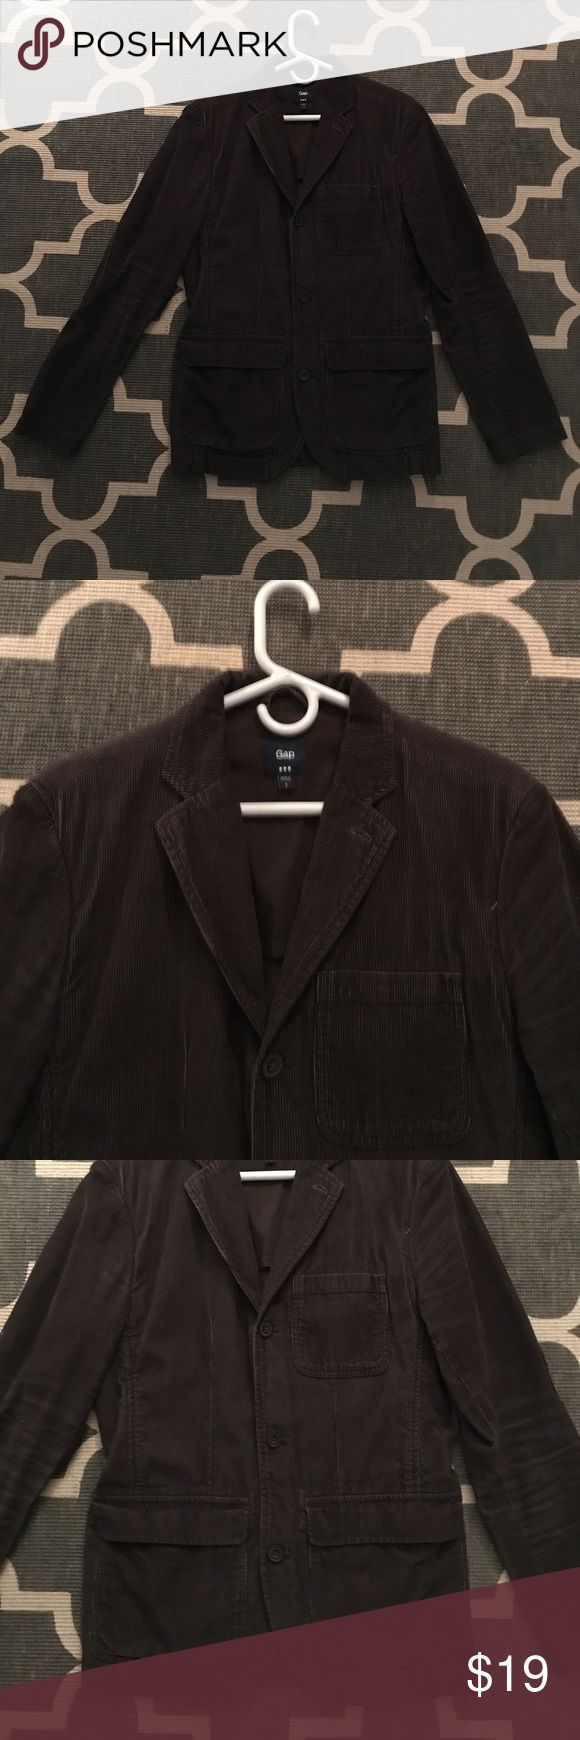 Men's corduroy jacket Great for fall!  Excellent condition!  Has elbow patches. GAP Jackets & Coats